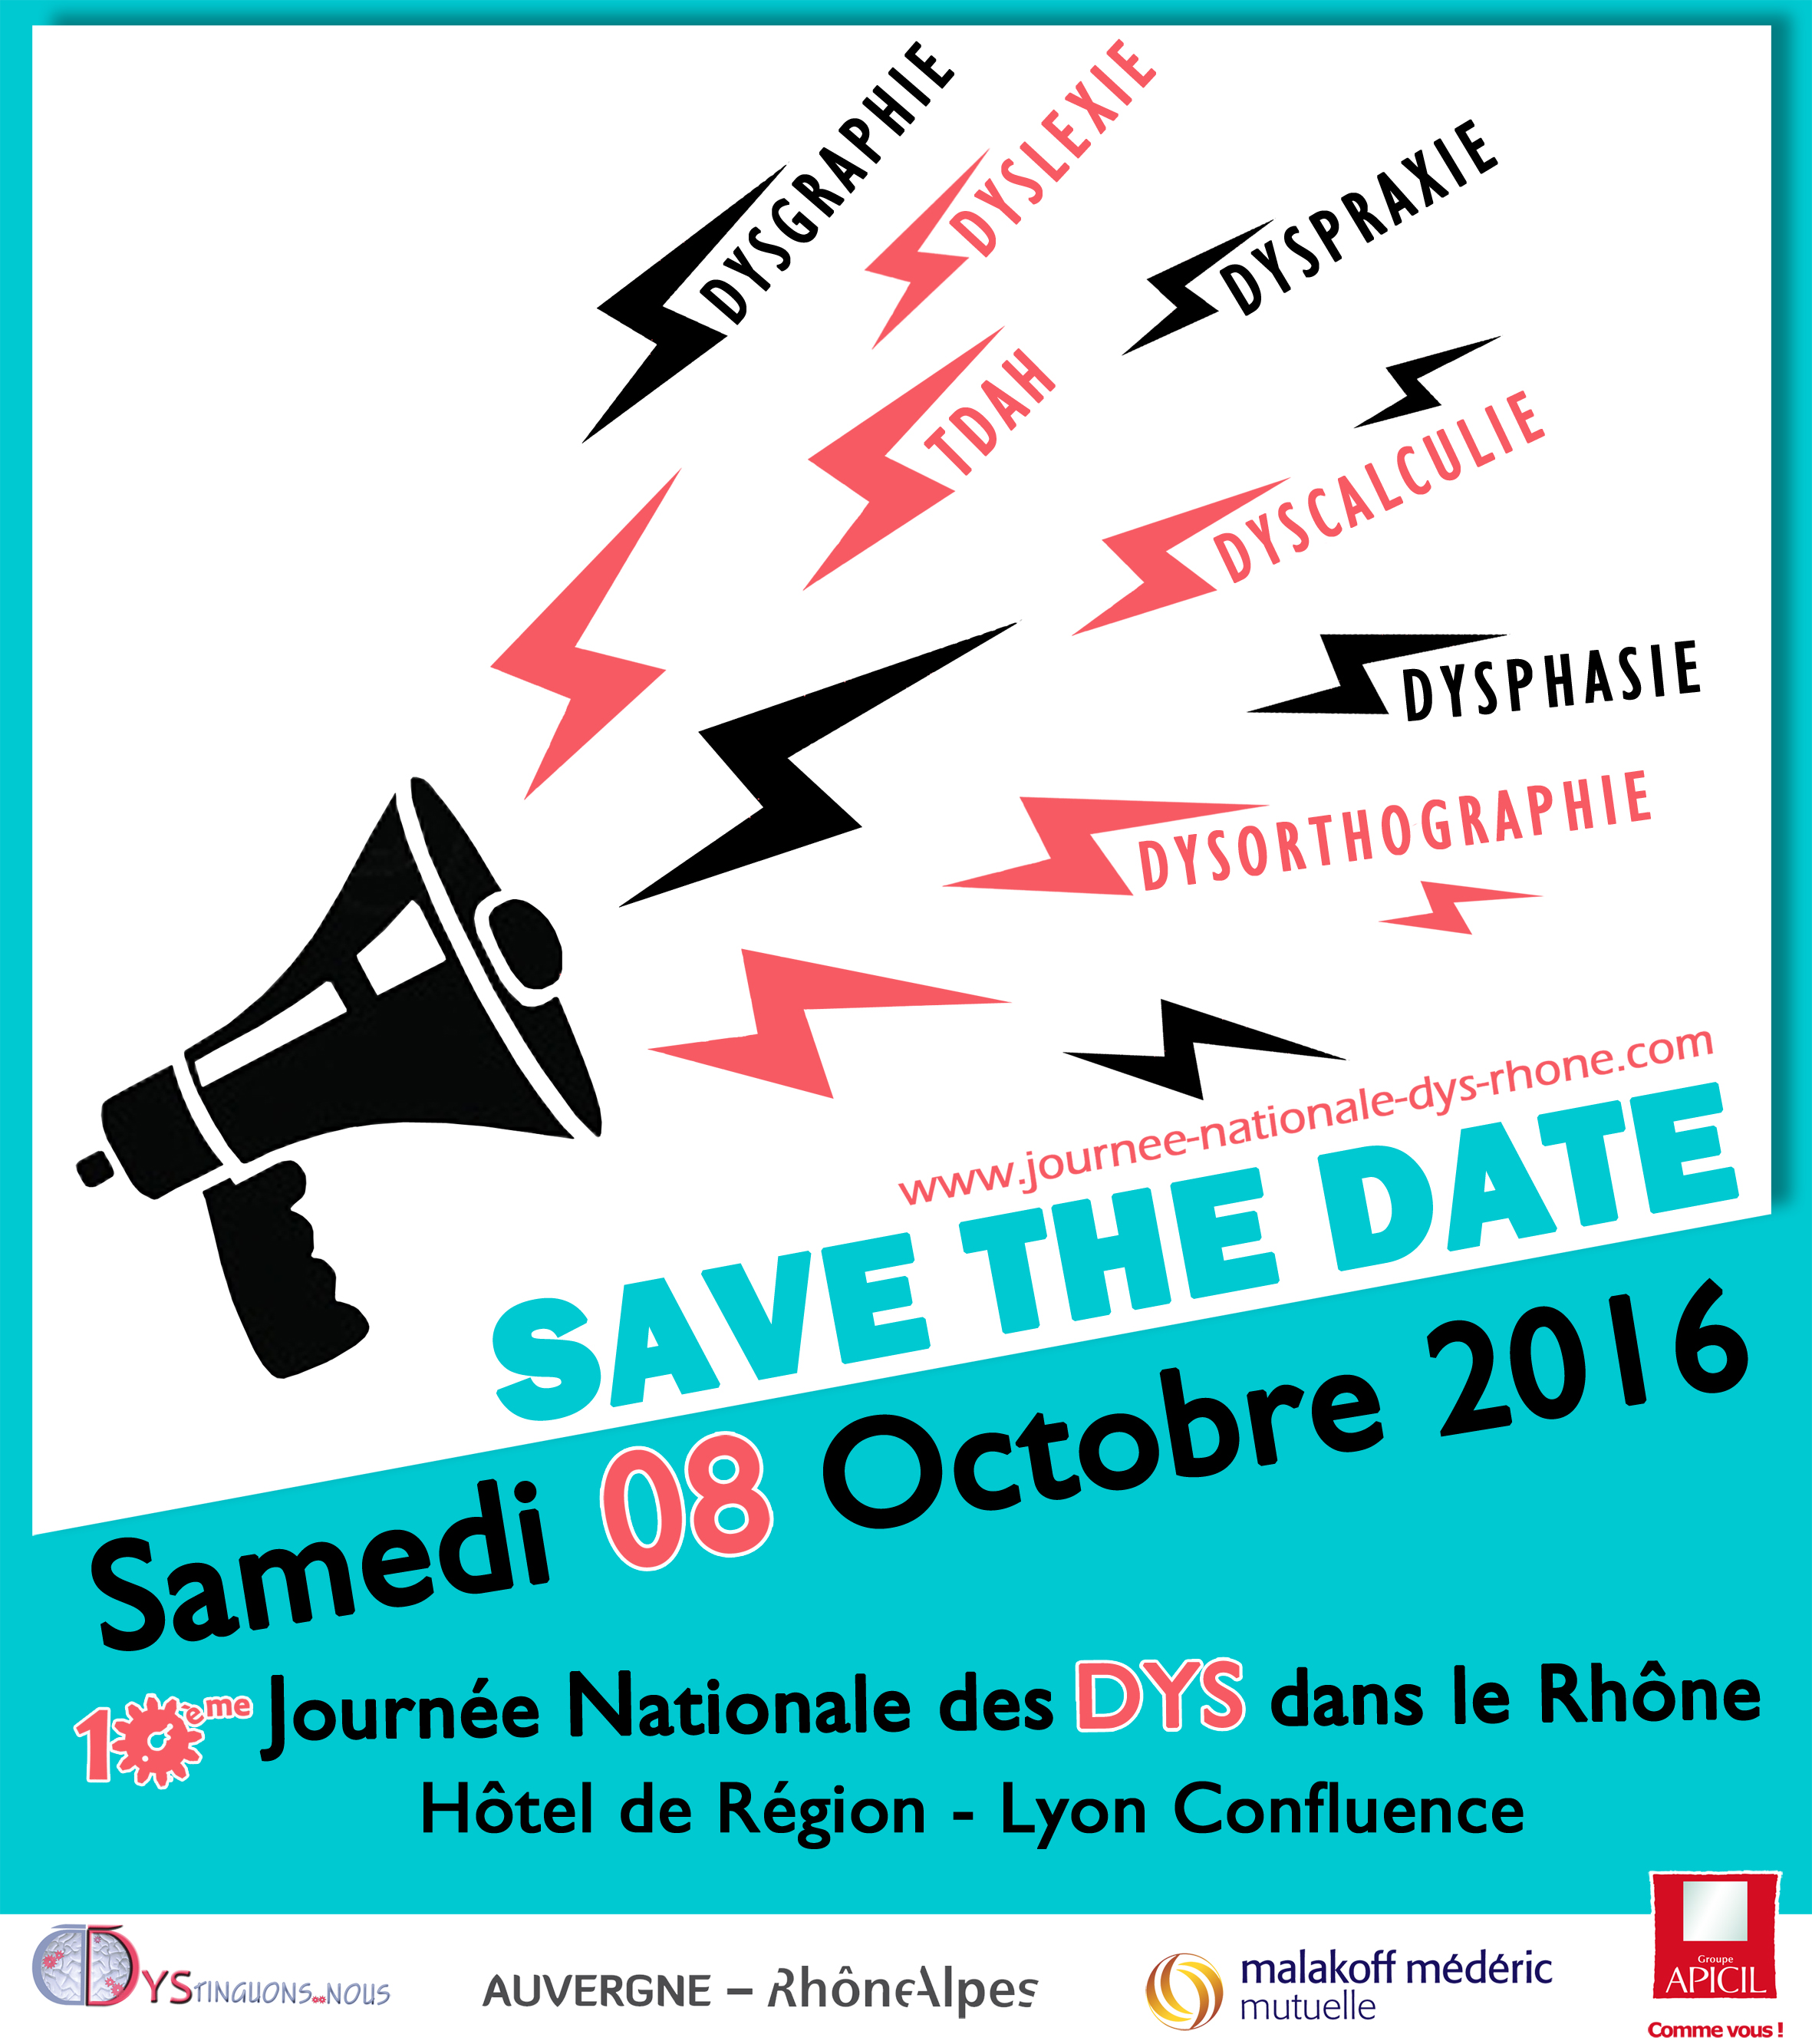 Save the date JND 2016 LG